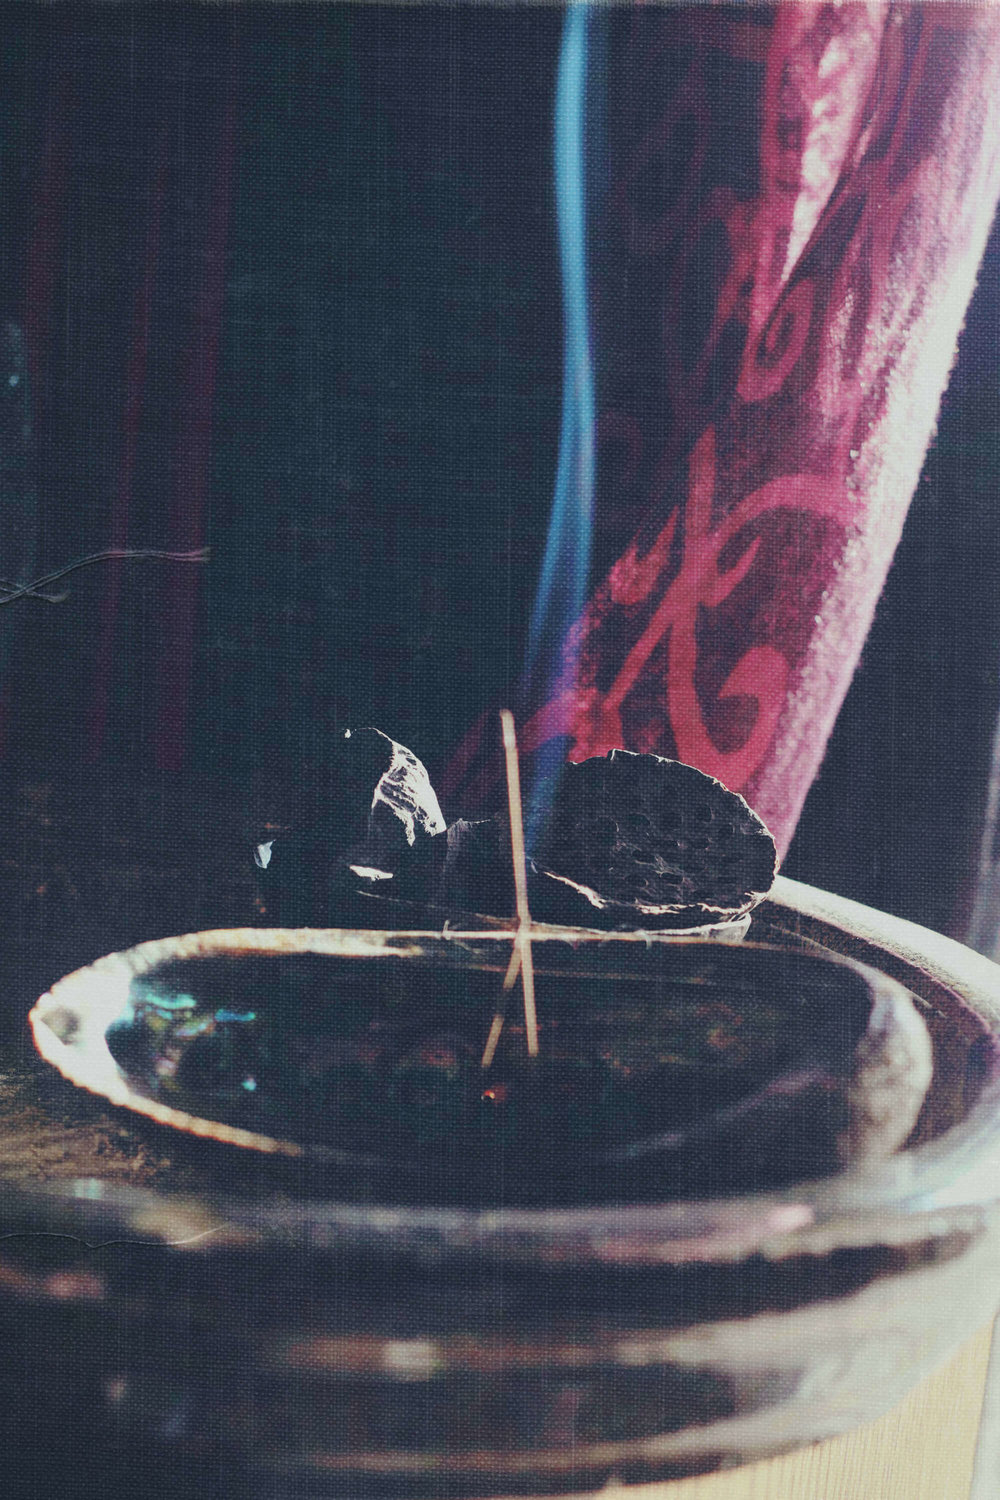 Incense, like prayer